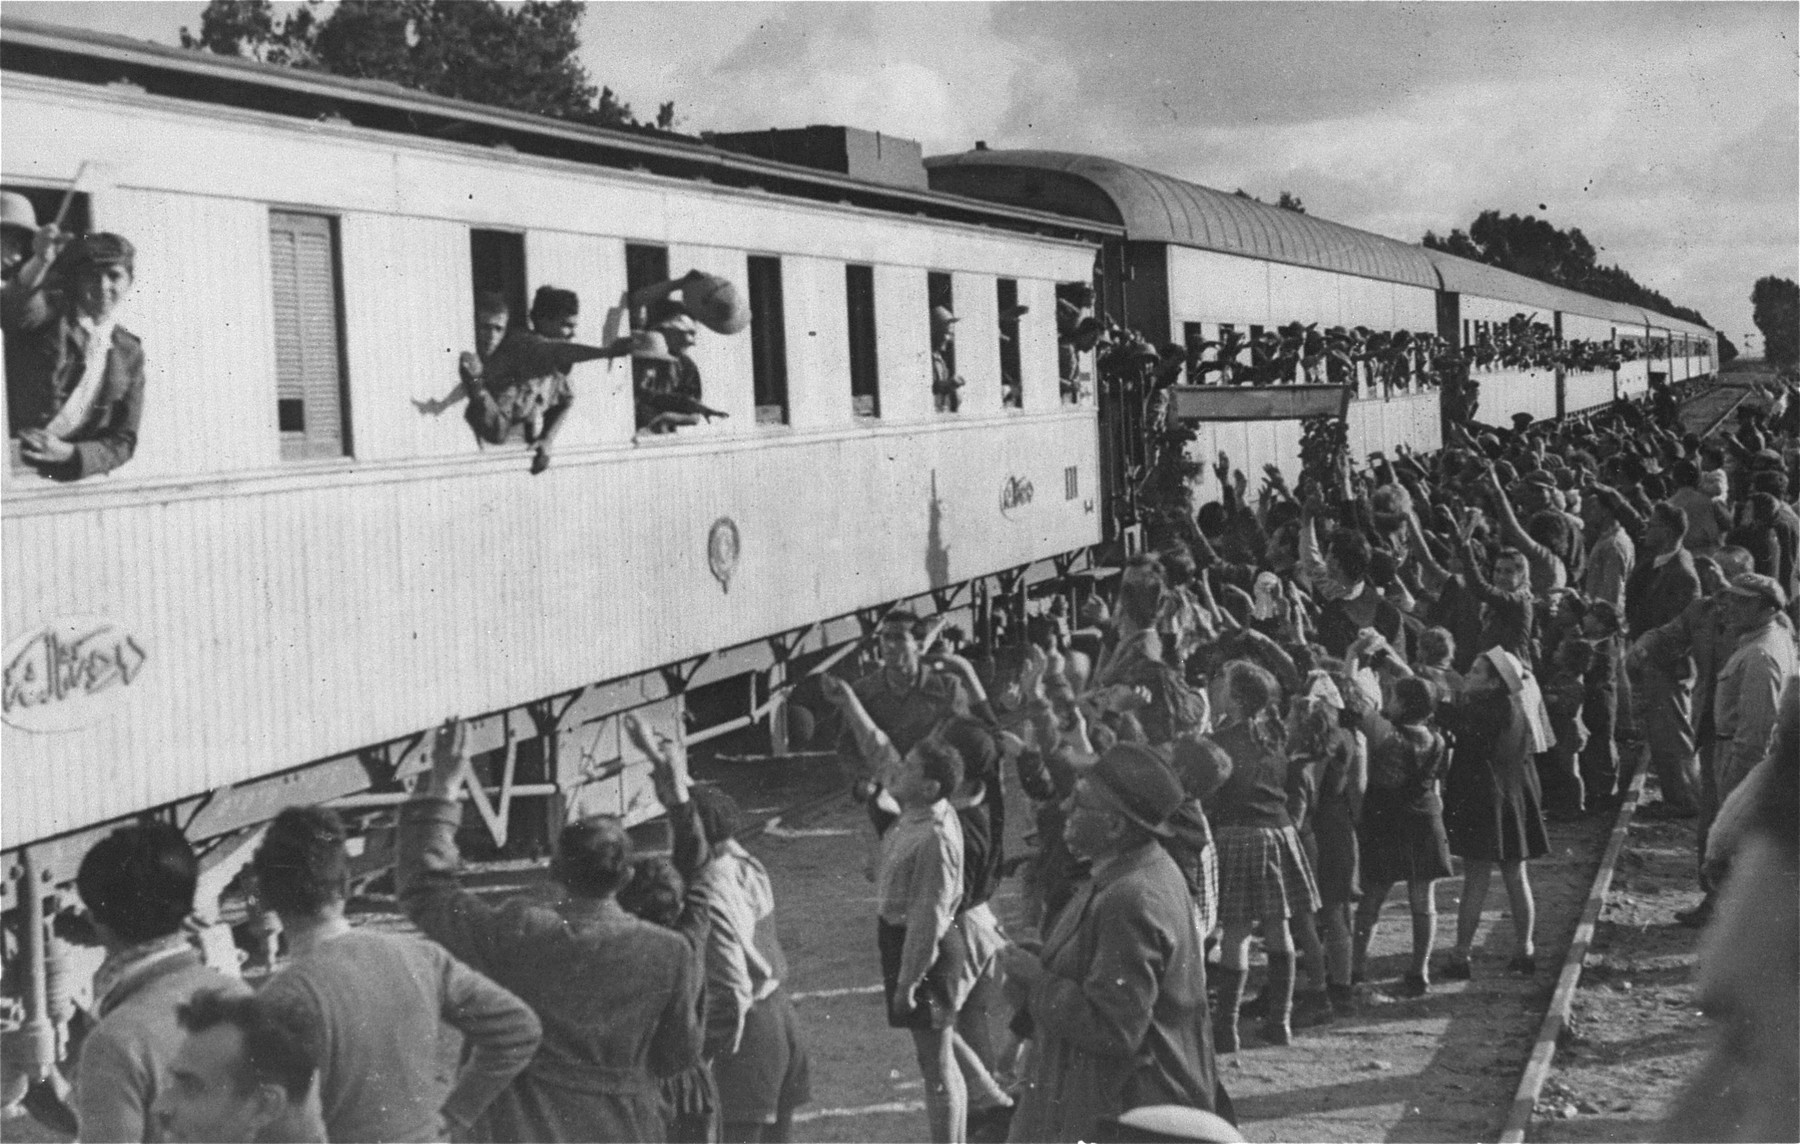 Members of the Yishuv (Jewish community in Palestine) greet the Teheran children as they arrive by train in Palestine.